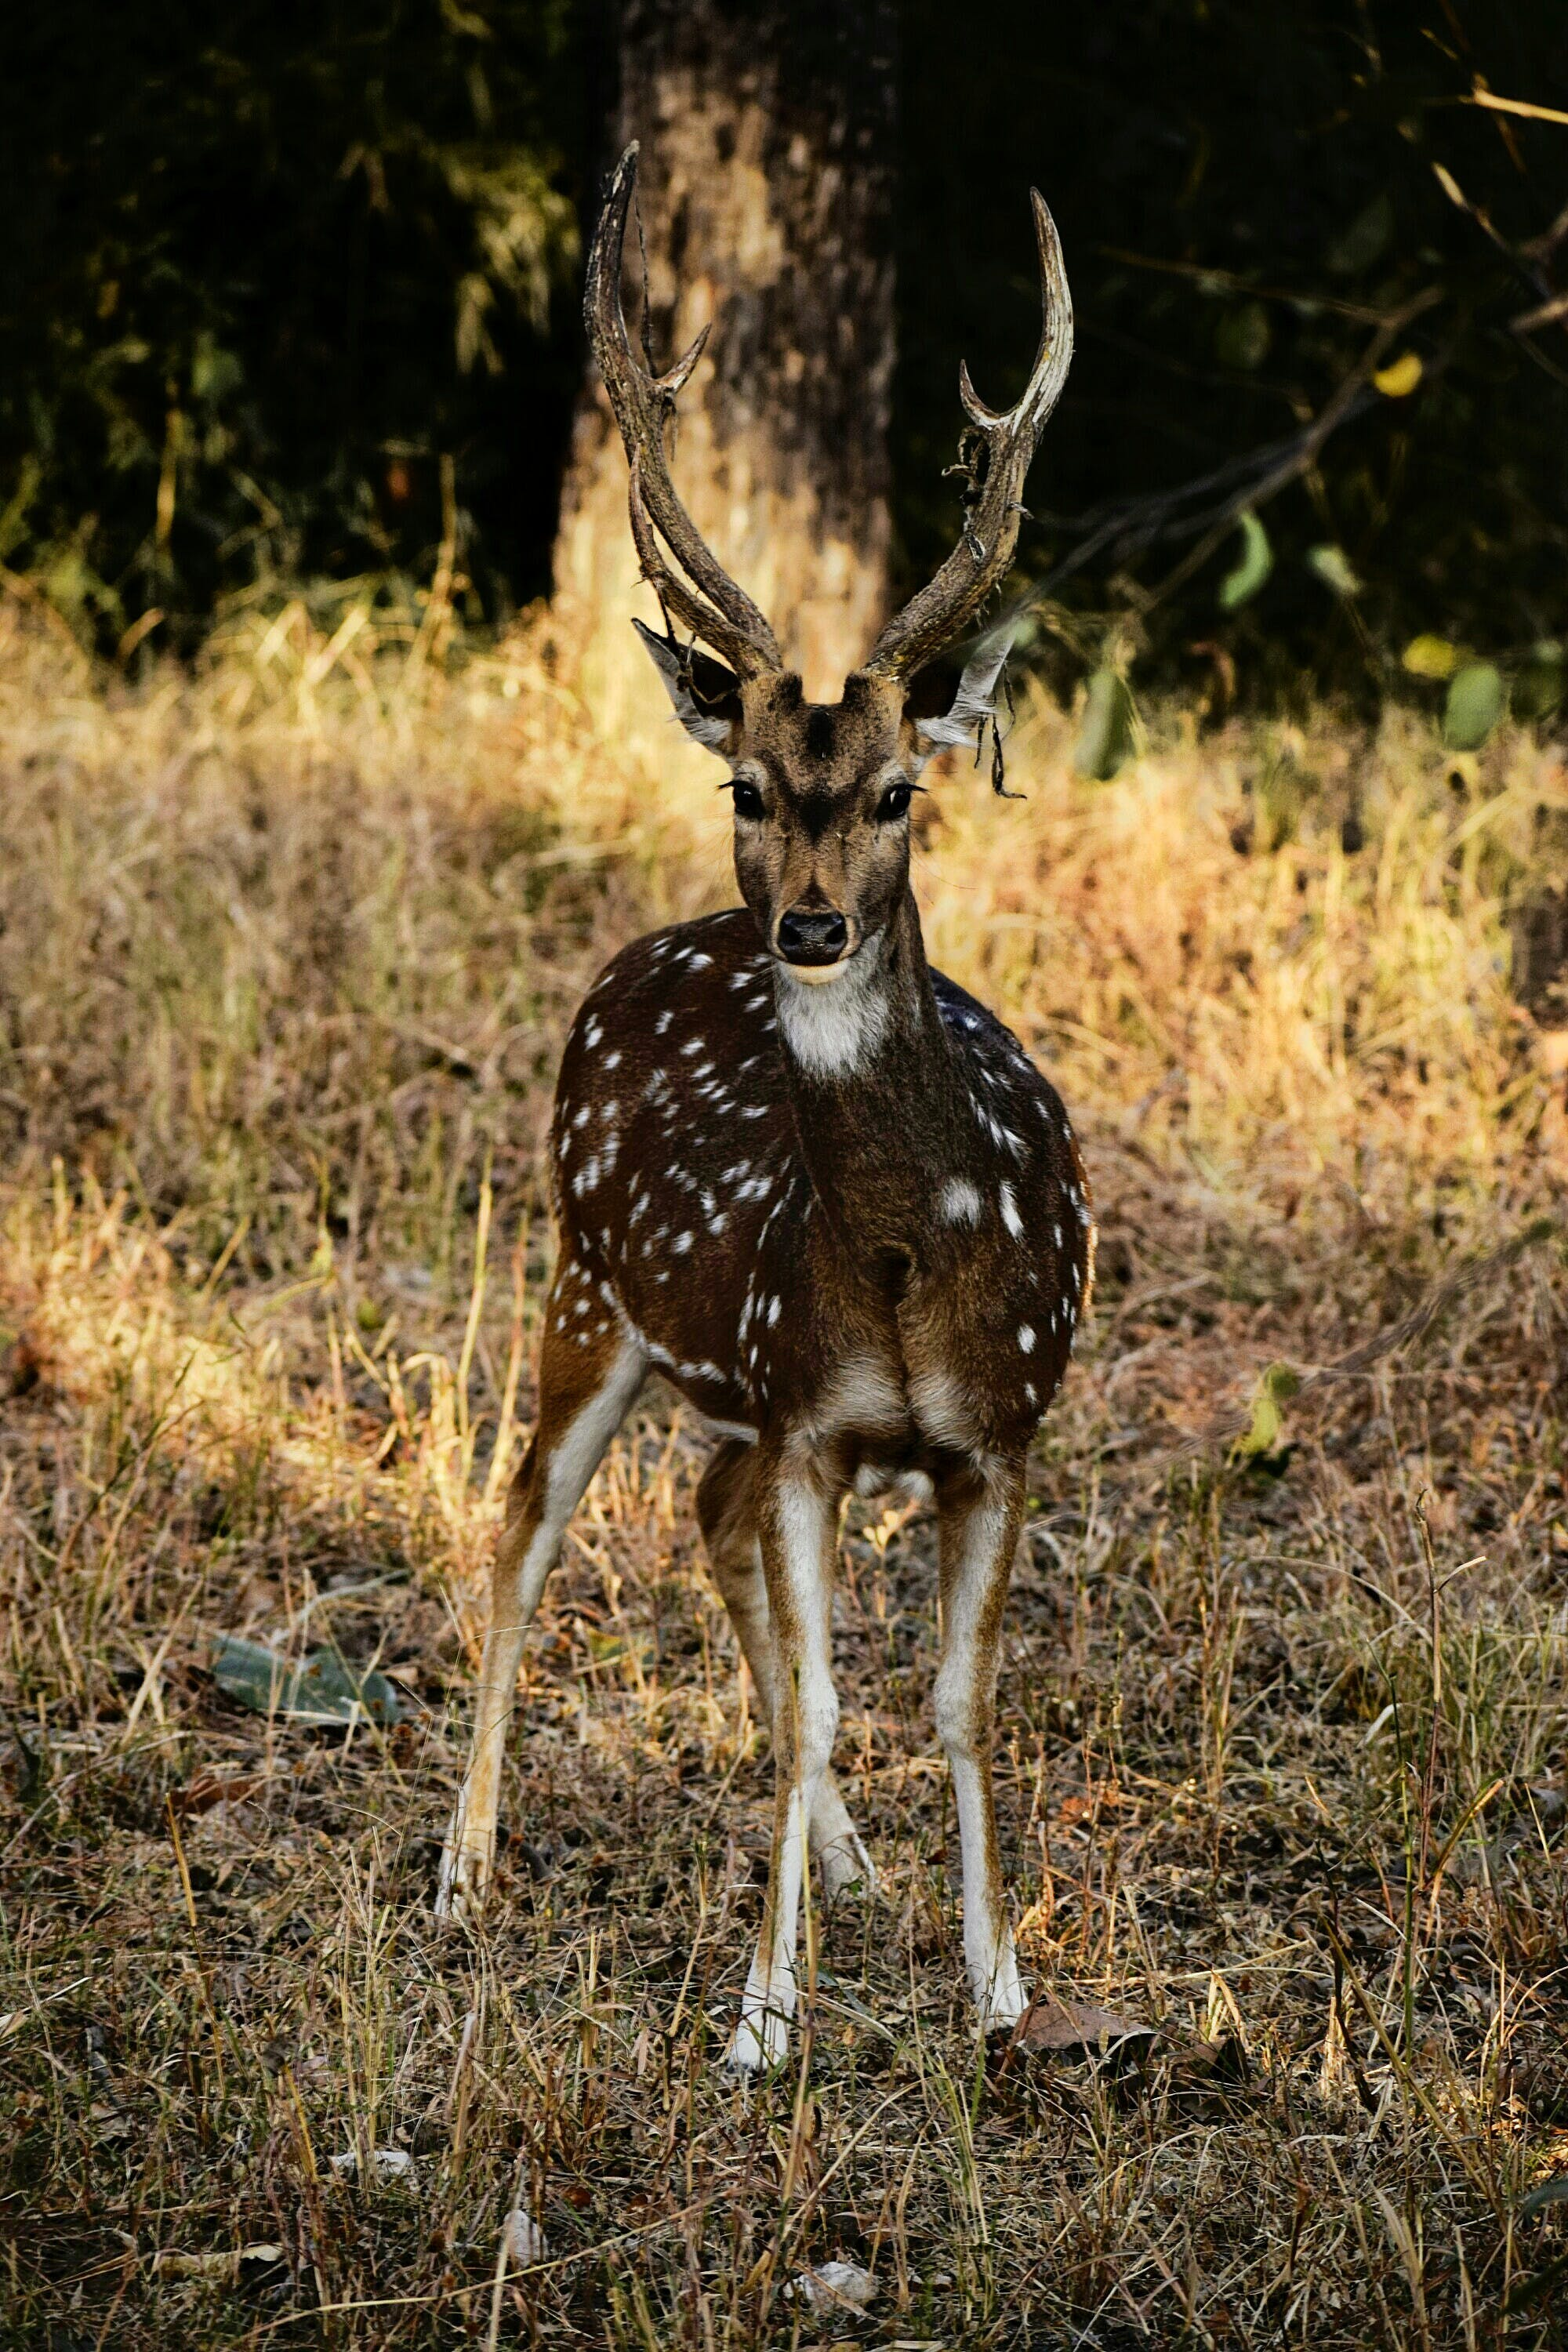 Photography of Deer on Grass